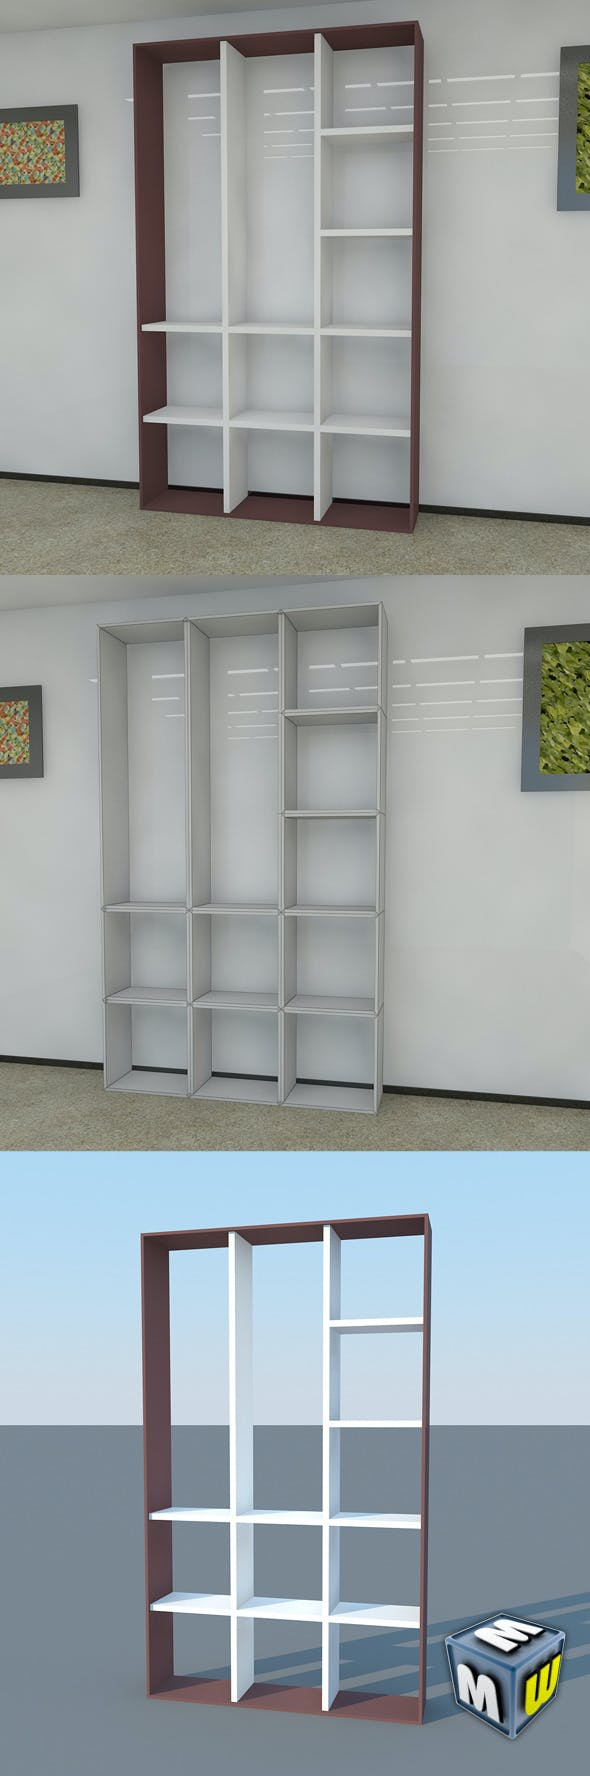 Bookshelf 15 MAX 2011 - 3DOcean Item for Sale